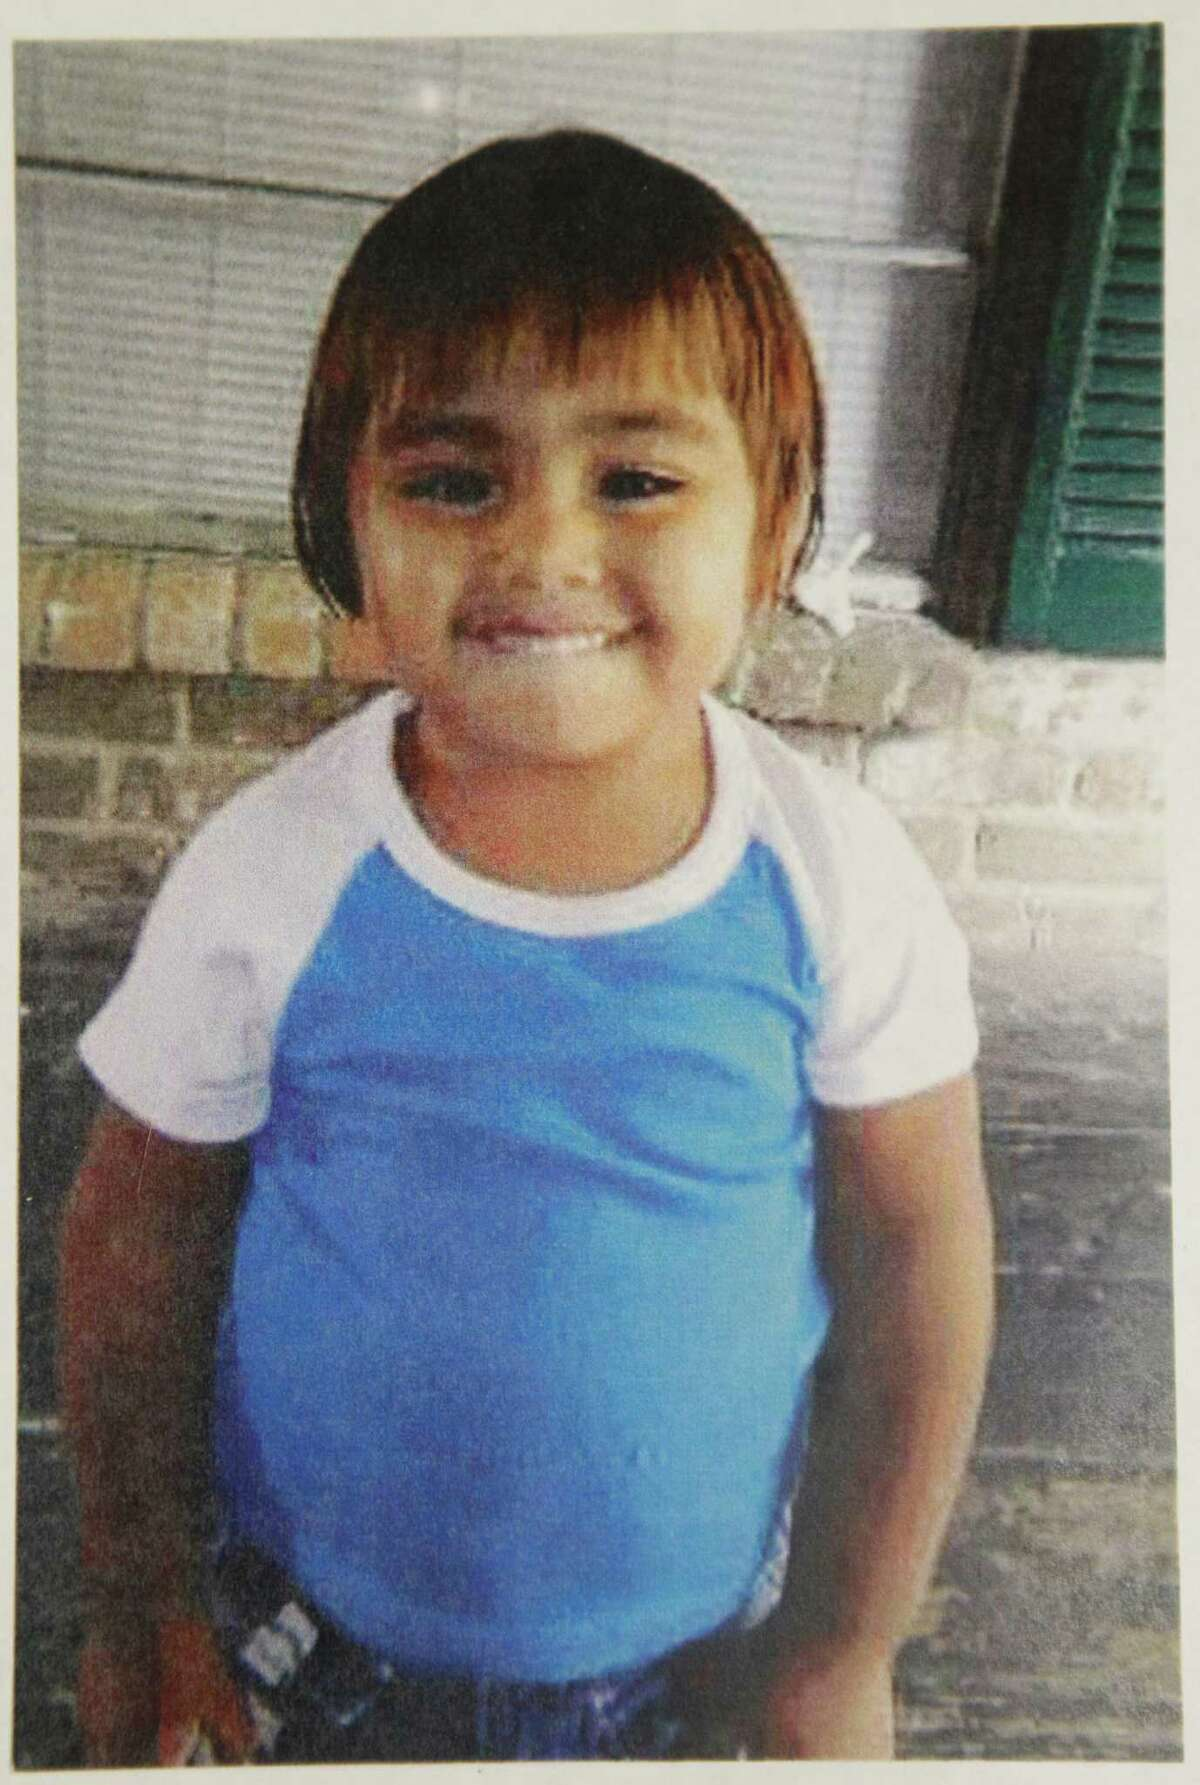 """Betsabeth """"Abby"""" Sandoval, seen in an undated photo, died June 3, 2011 at age 4 from repeated beatings and burnings. Her mother, Maciel Sandoval, was held responsible."""